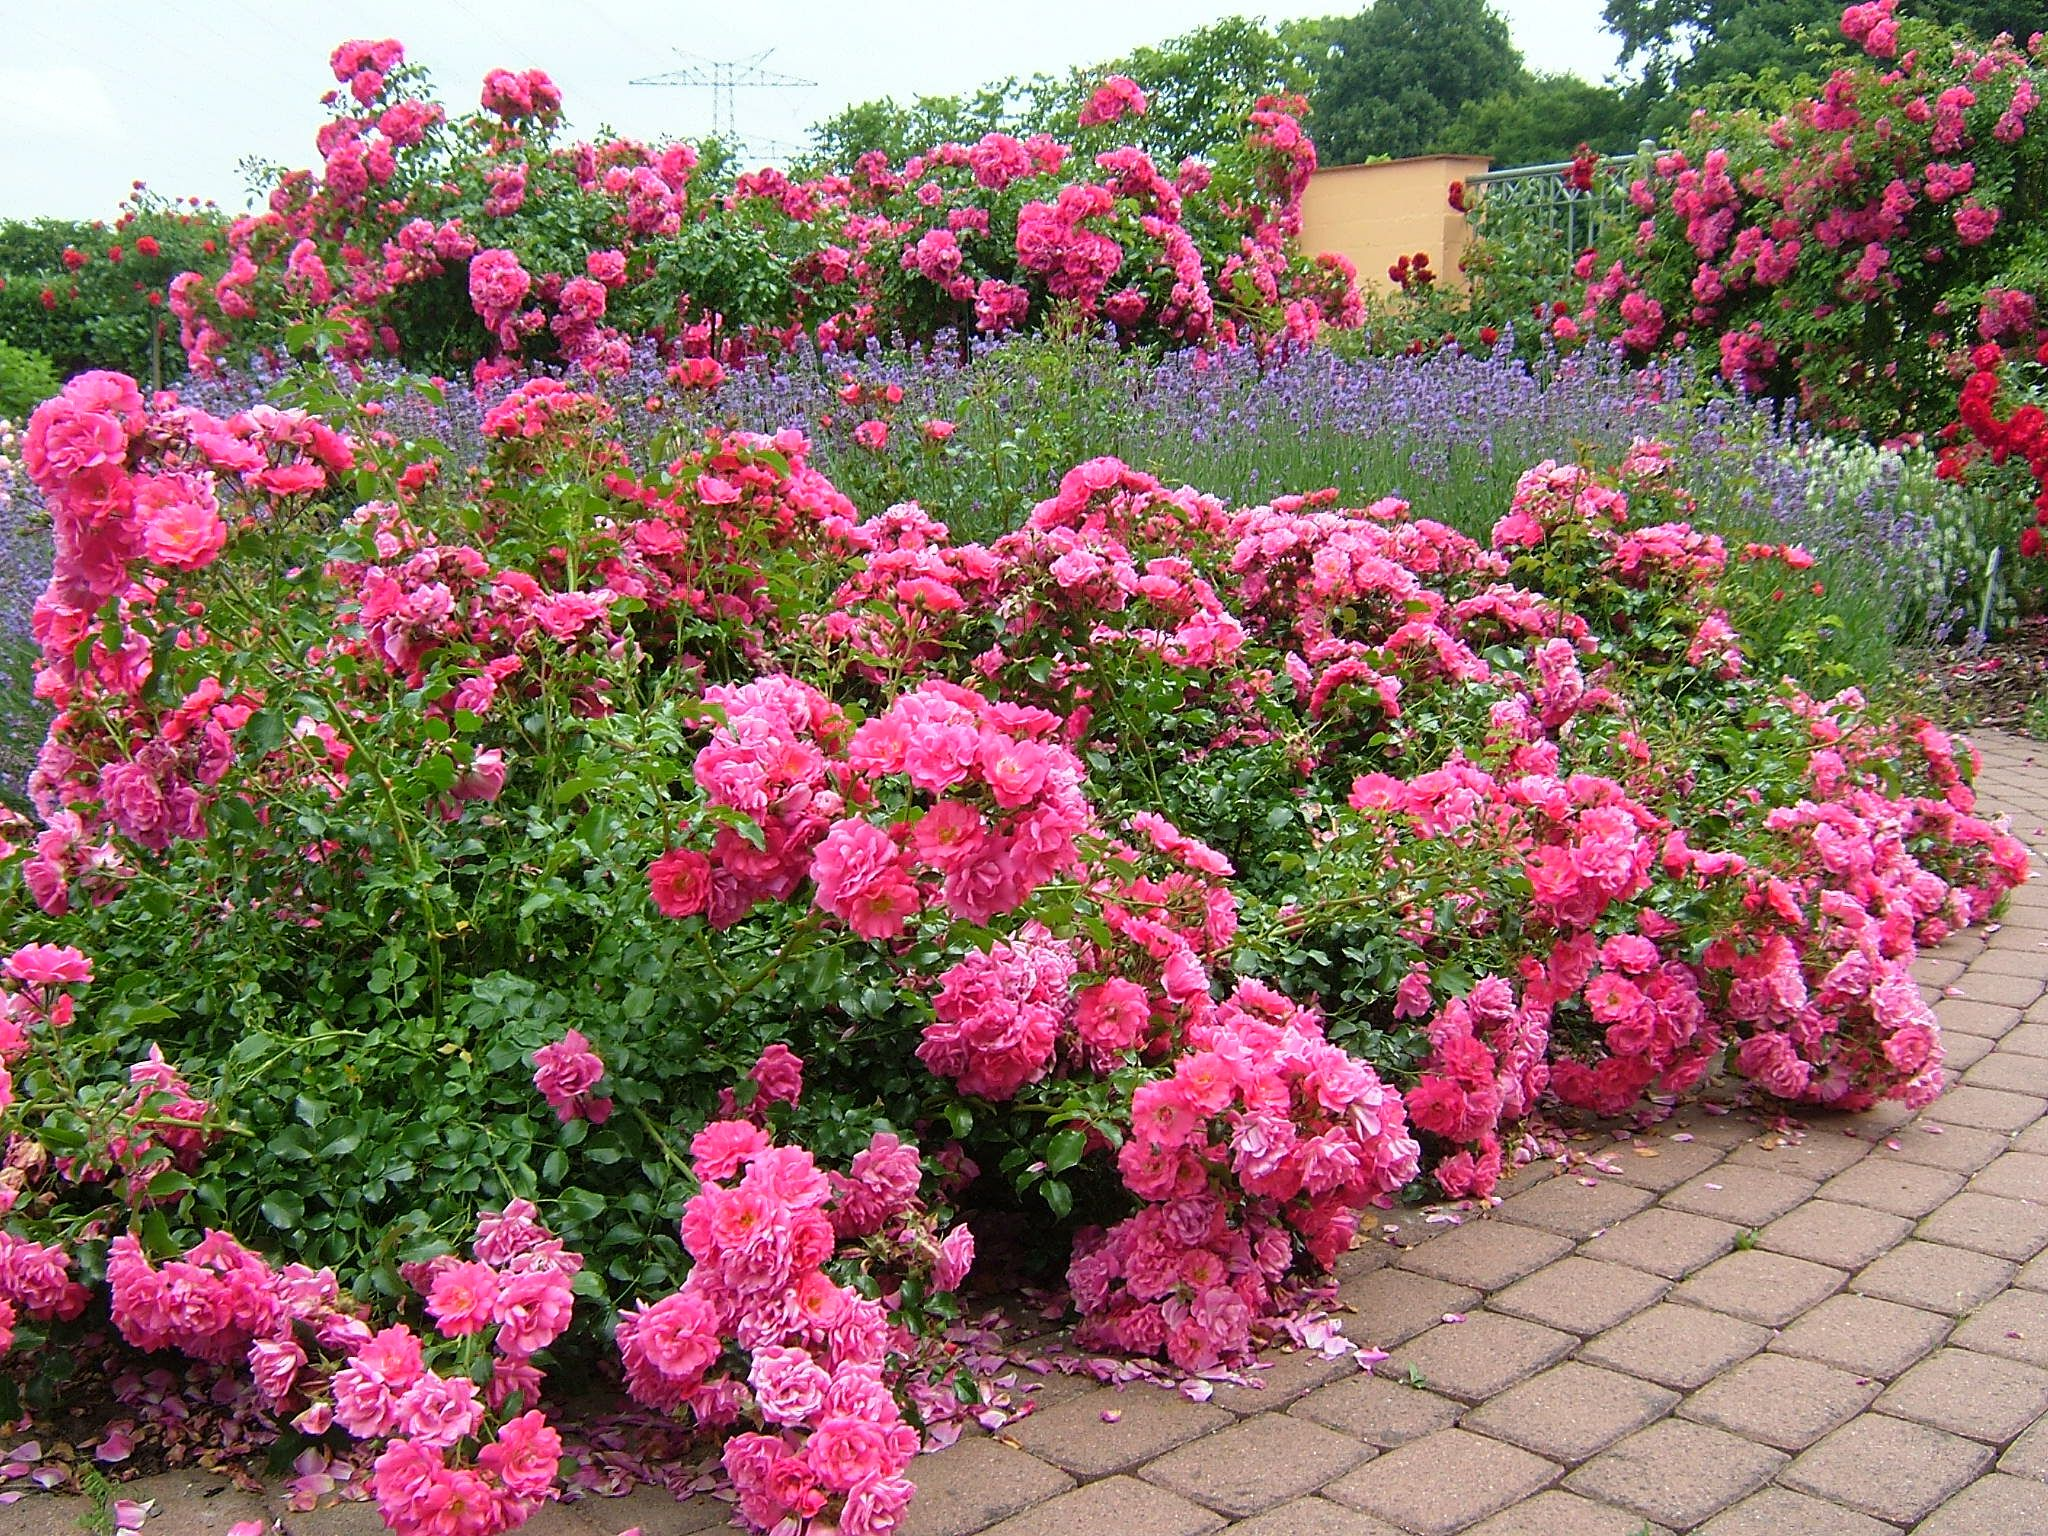 Flower carpet pink groundcover rose with lavender along walkway flower carpet pink groundcover rose with lavender along walkway the original eco rose dhlflorist Image collections